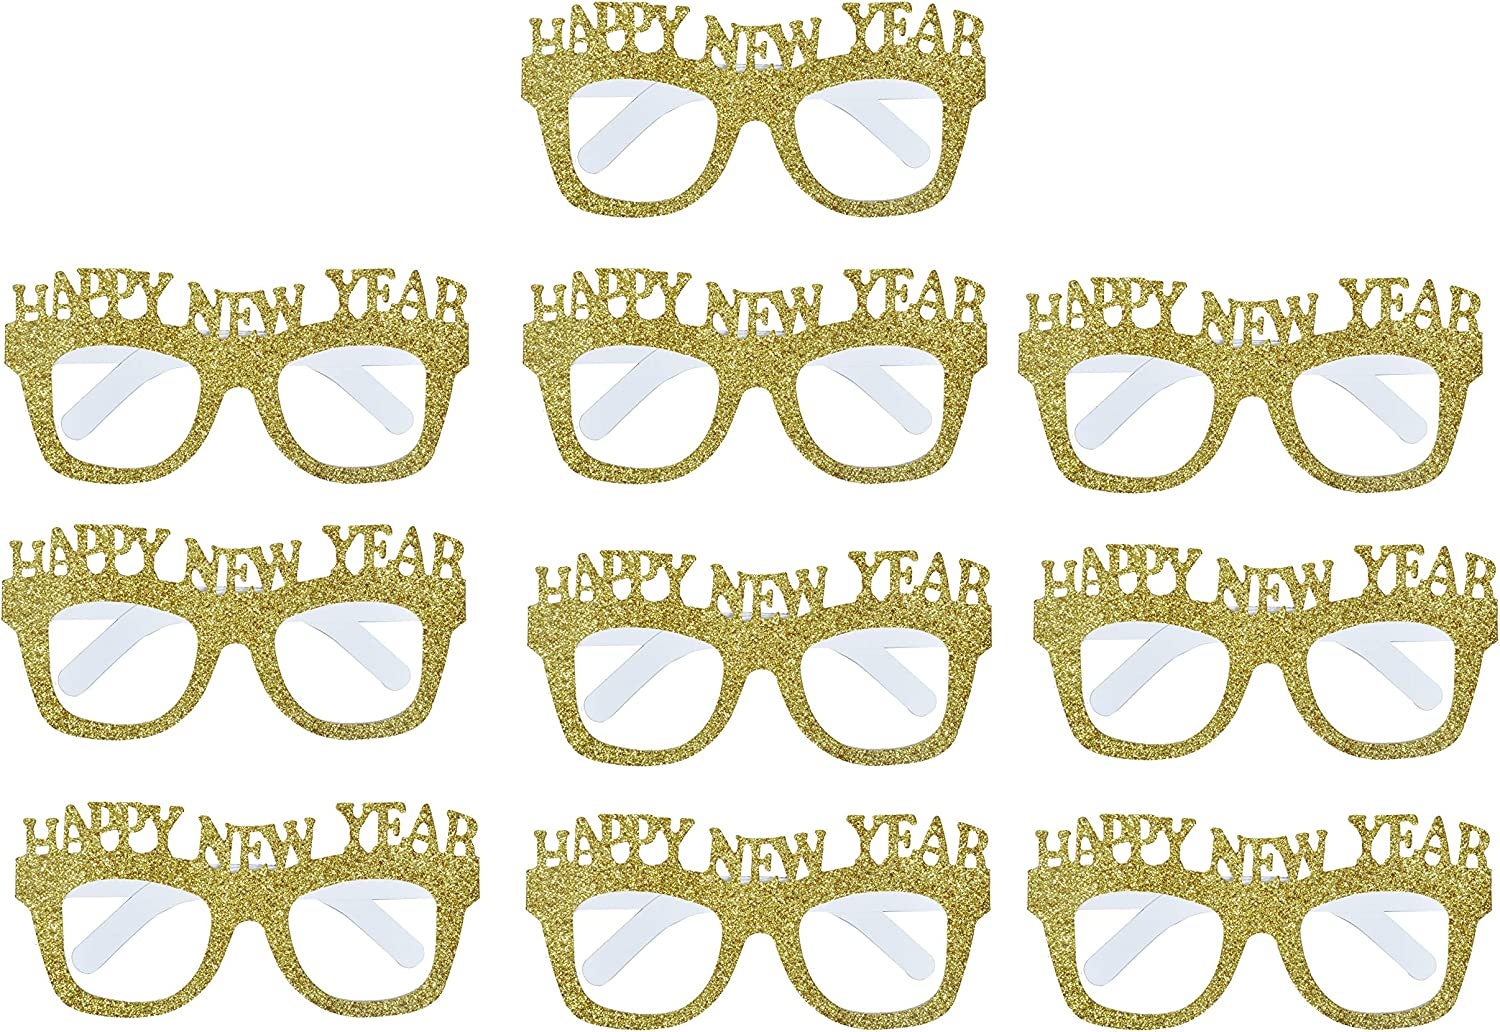 EBTOYS Happy New Year Party Favor Funny Glasses Party Sunglasses Party Props Costume Party Supplies,10 Pack